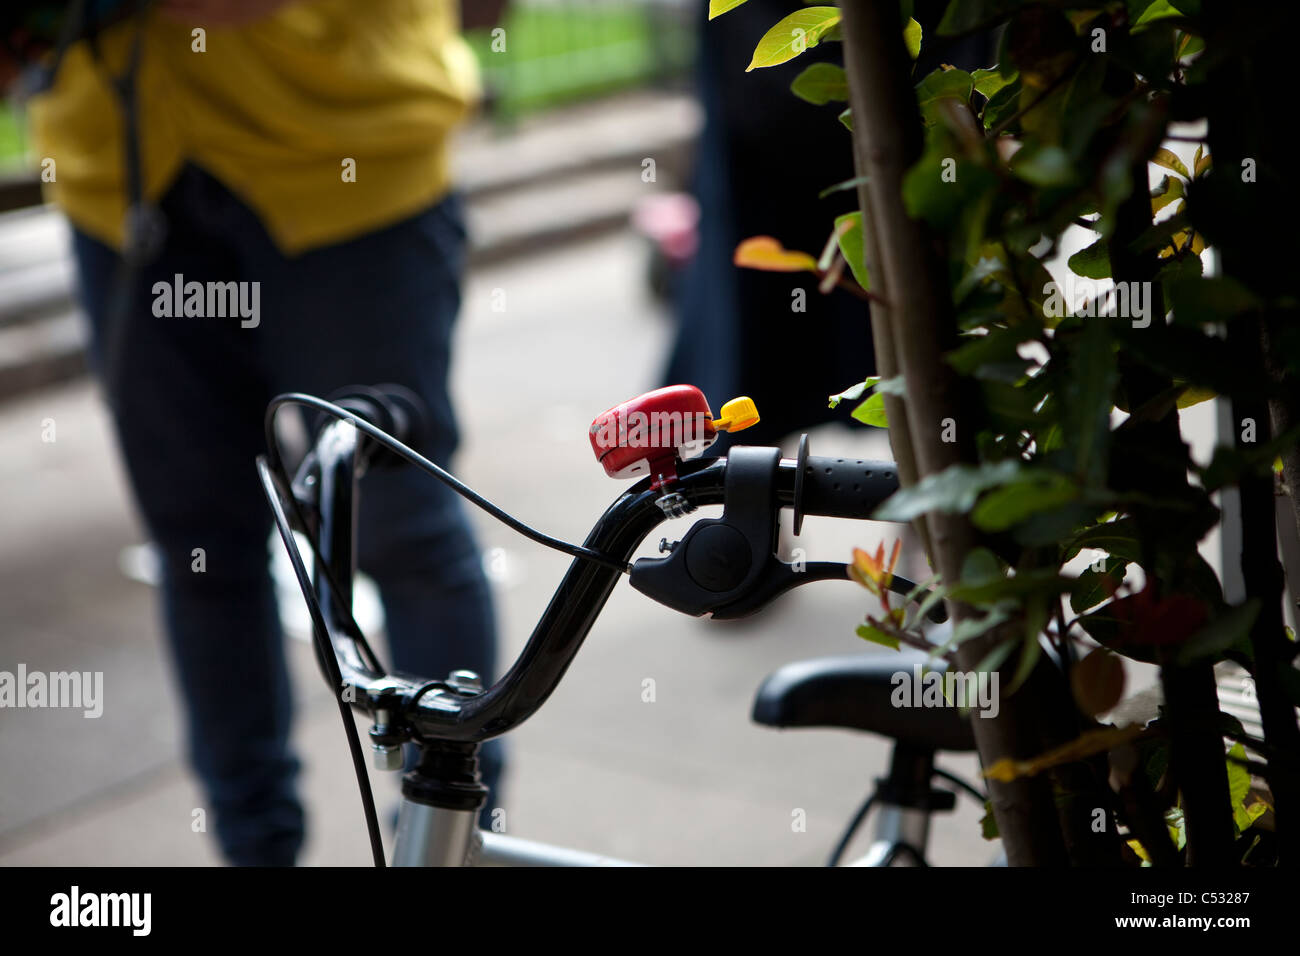 Child's Bicycle with bell on handlebars - Stock Image